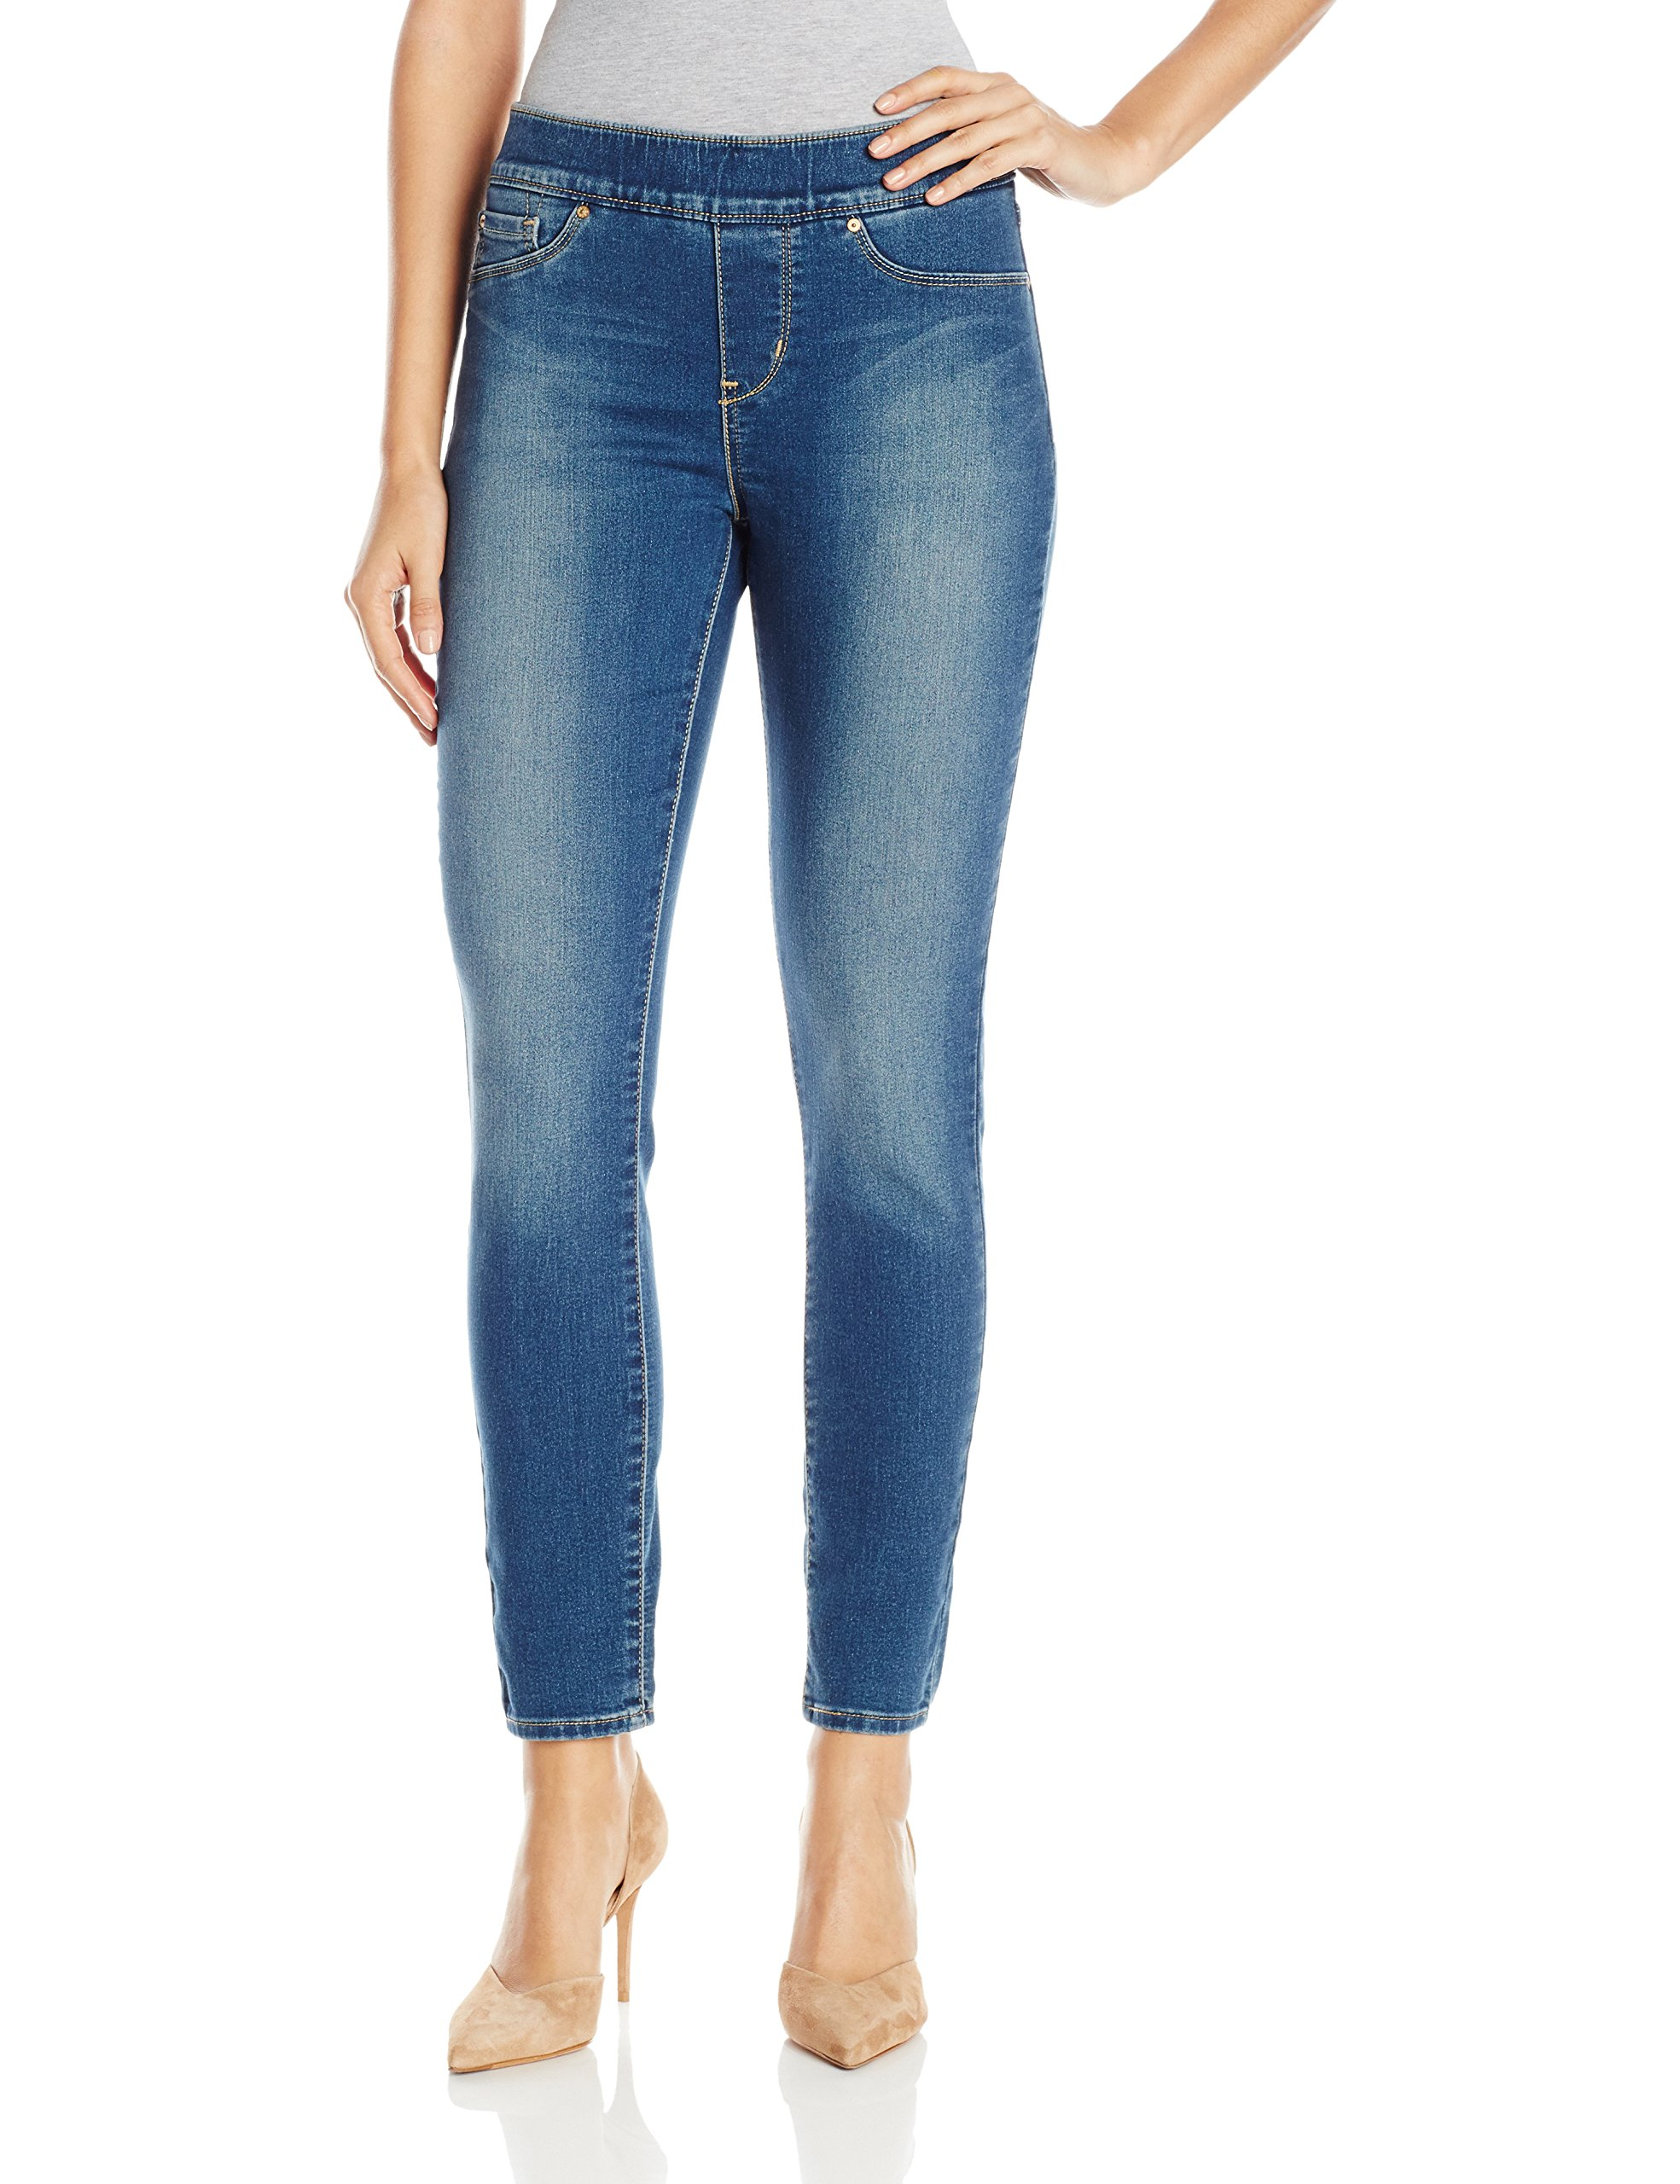 Signature by Levi Strauss & Co Women's Totally Shaping Pull On Skinny Jeans, Harmony, 14 Medium